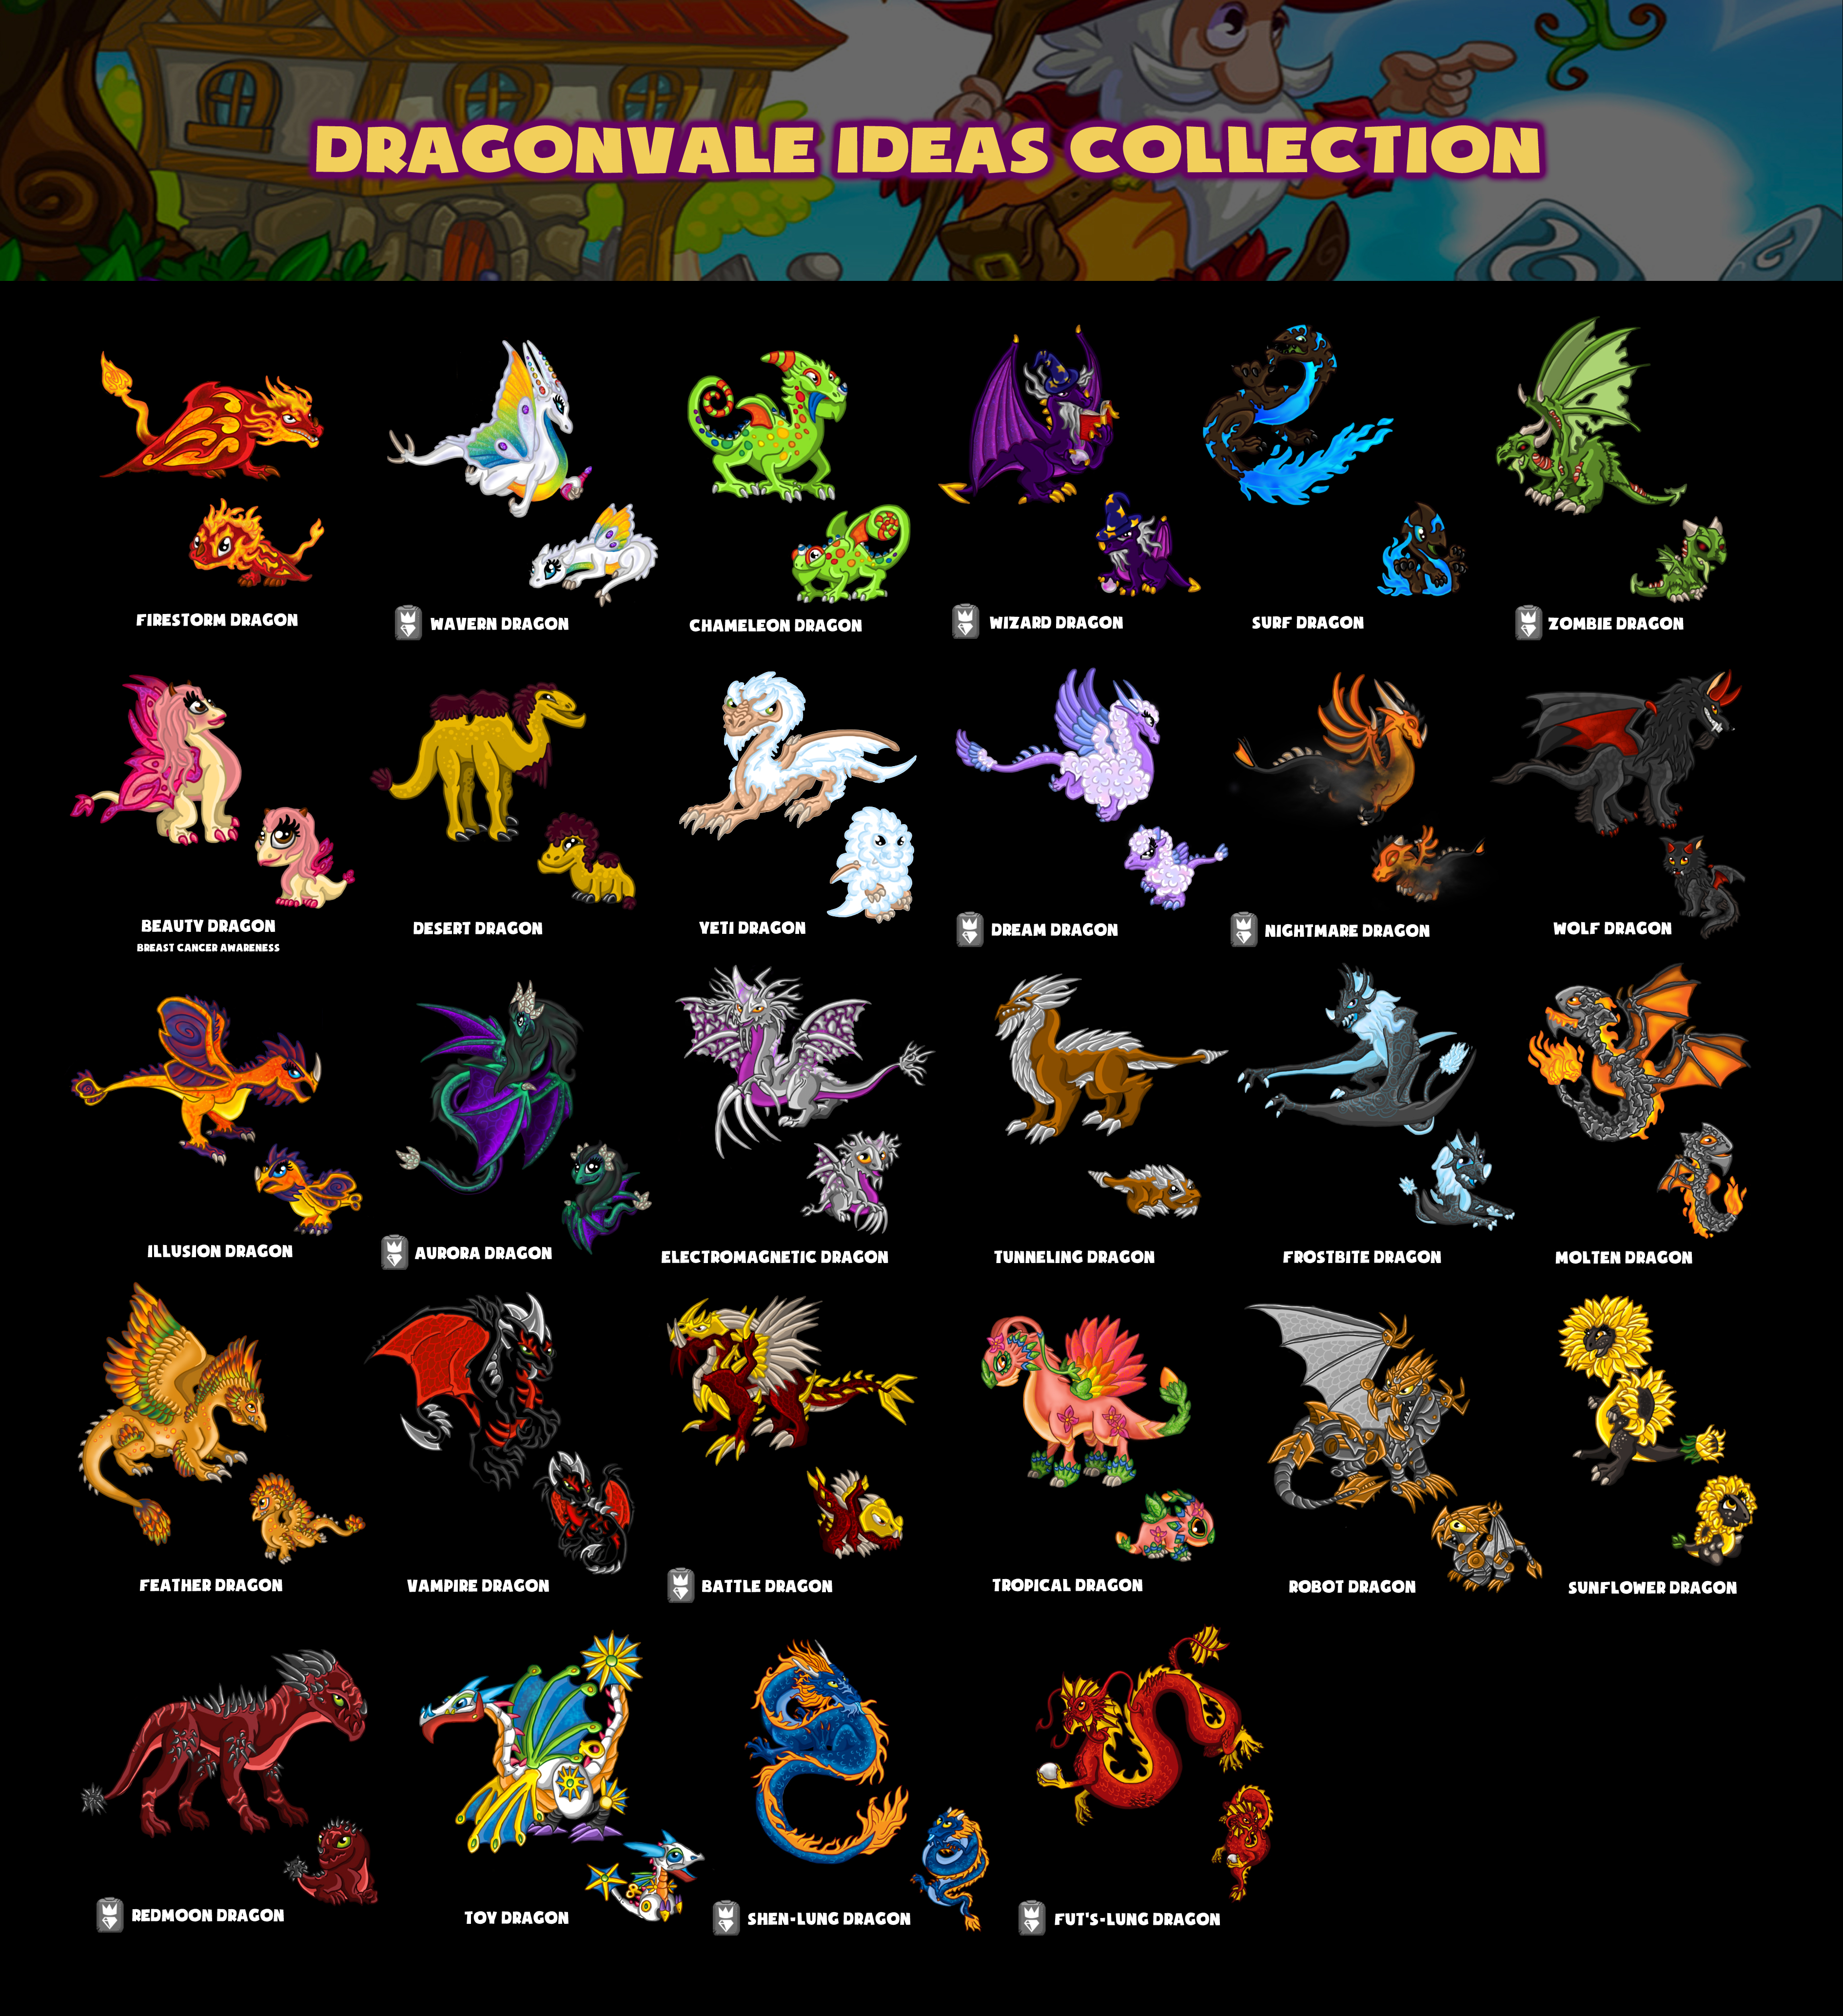 My Collection Of Dragonvale